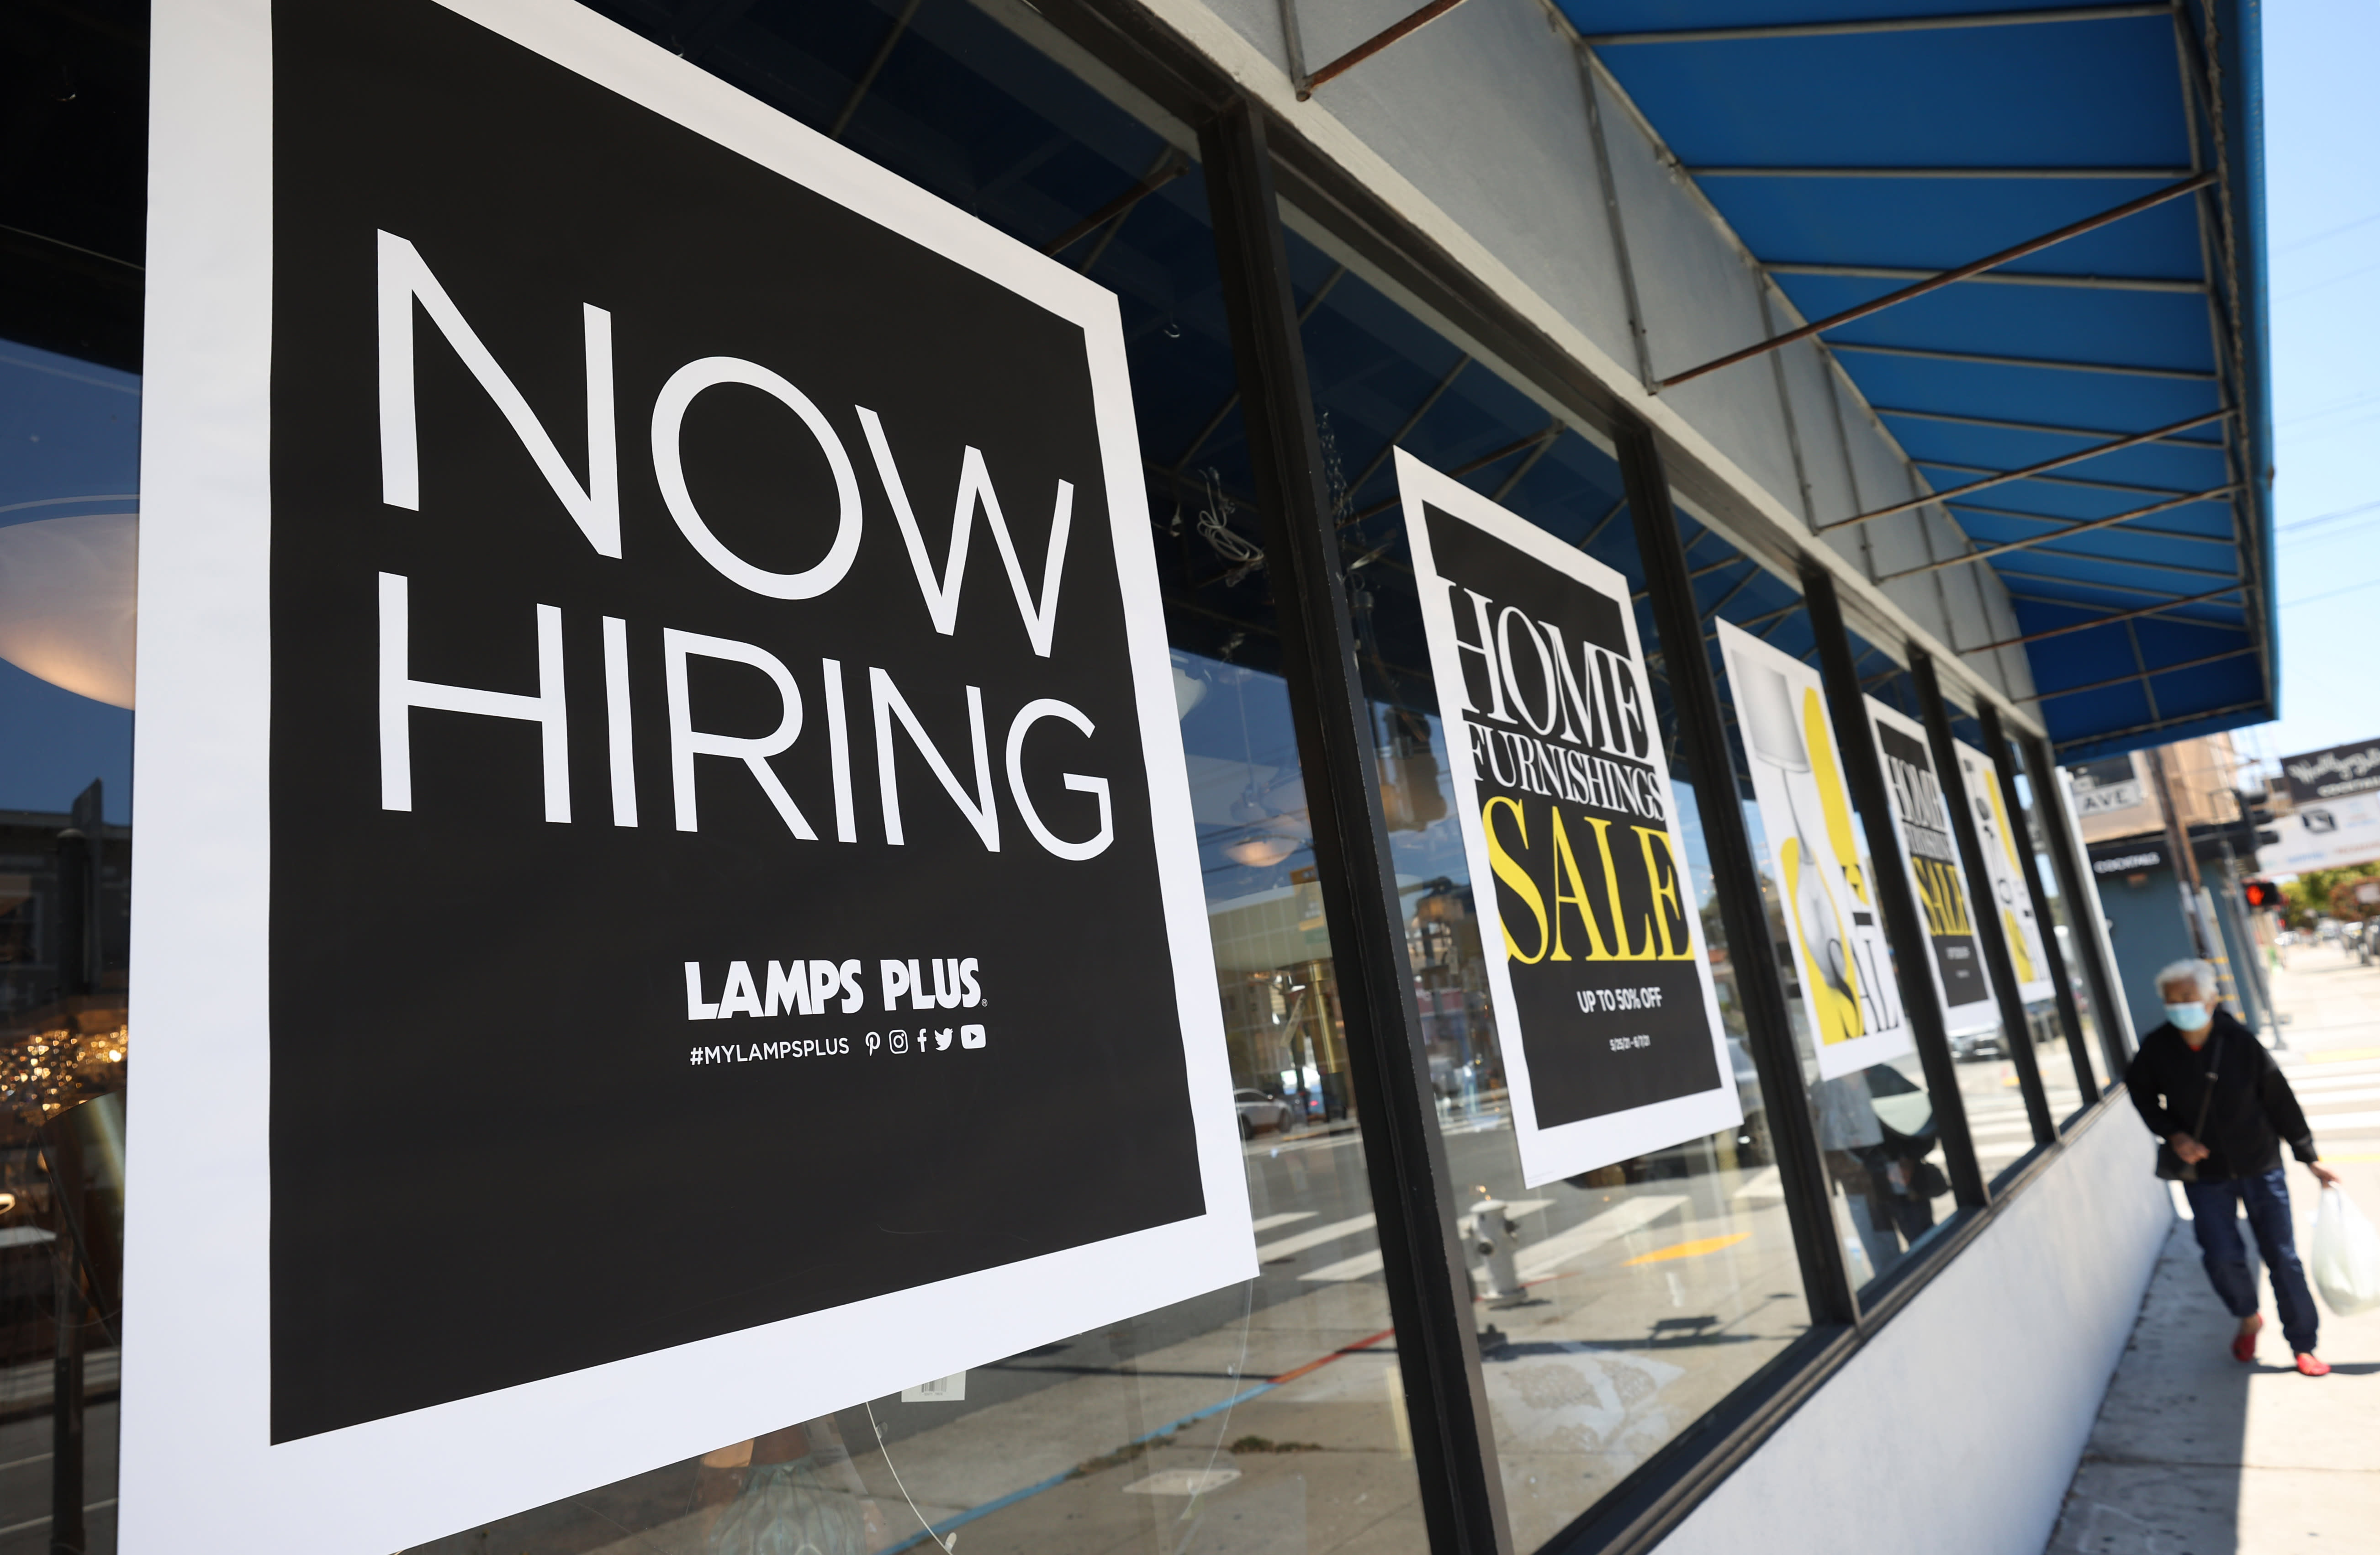 Task openings set record of 9.3 million as labor market booms thumbnail